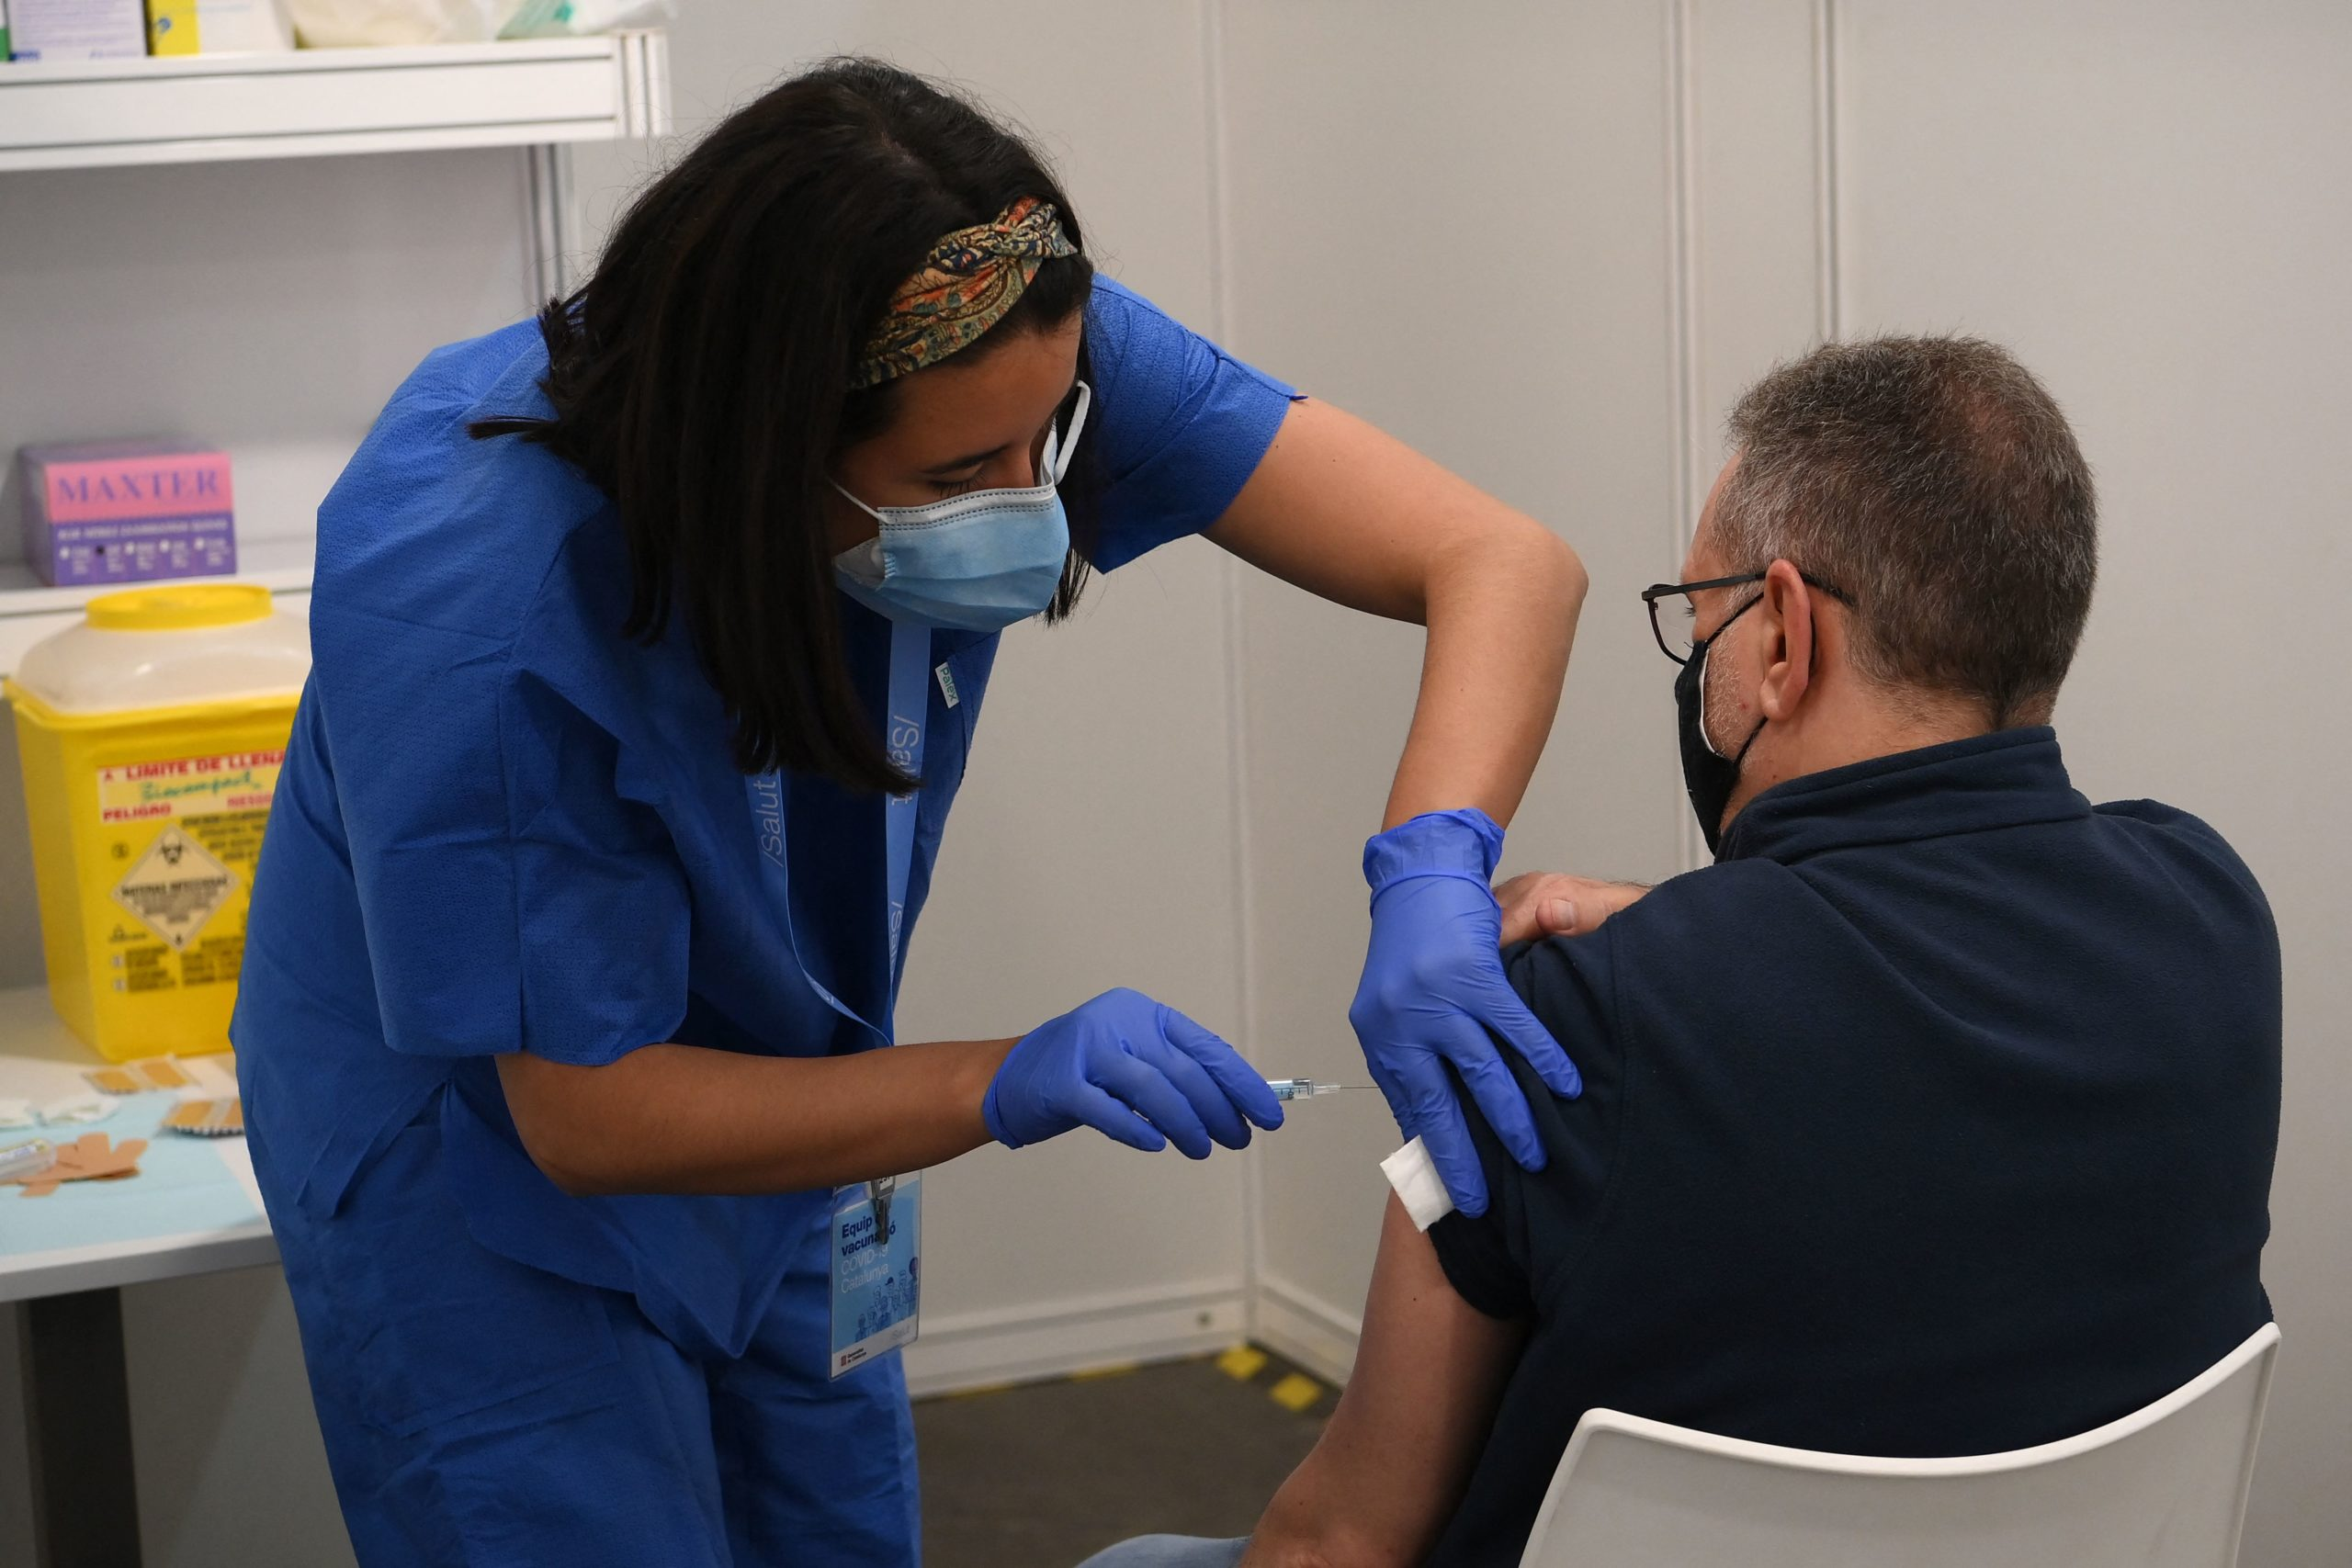 A man receives a dose of the AstraZeneca's Covid-19 vaccine at a vaccination center on April 26, 2021 in Barcelona amid a campaign of vaccination to fight the spread of coronavirus. (Photo by LLUIS GENE / AFP) (Photo by LLUIS GENE/AFP via Getty Images)